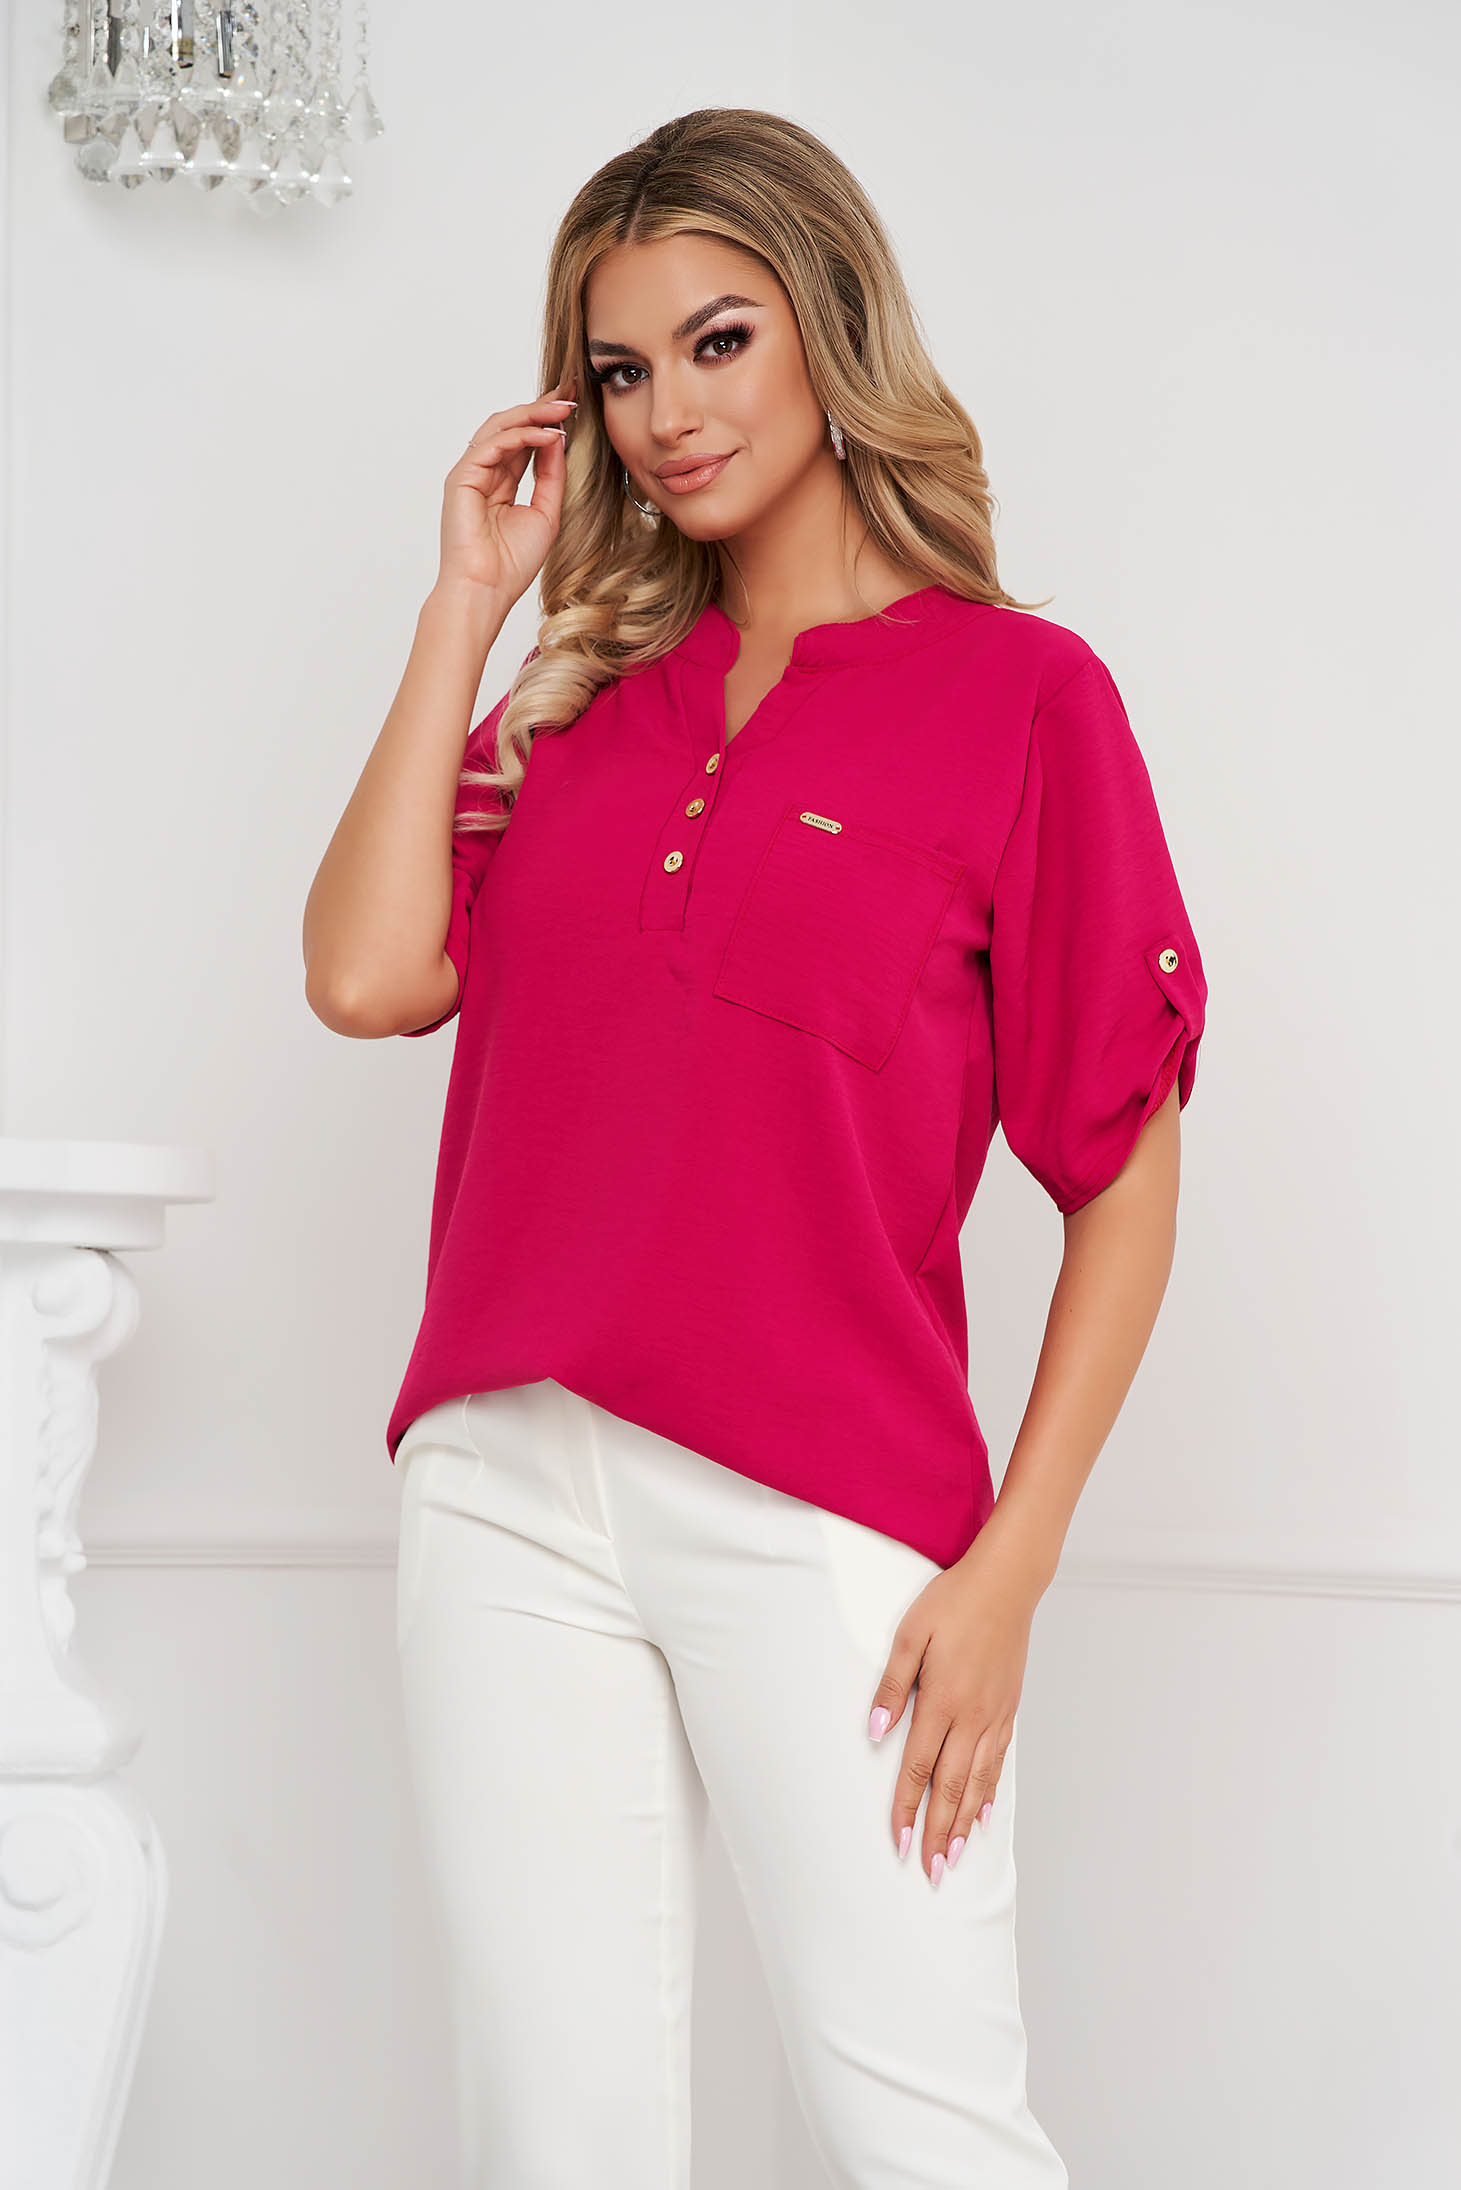 Raspberry women`s blouse loose fit wrinkled material a front pocket